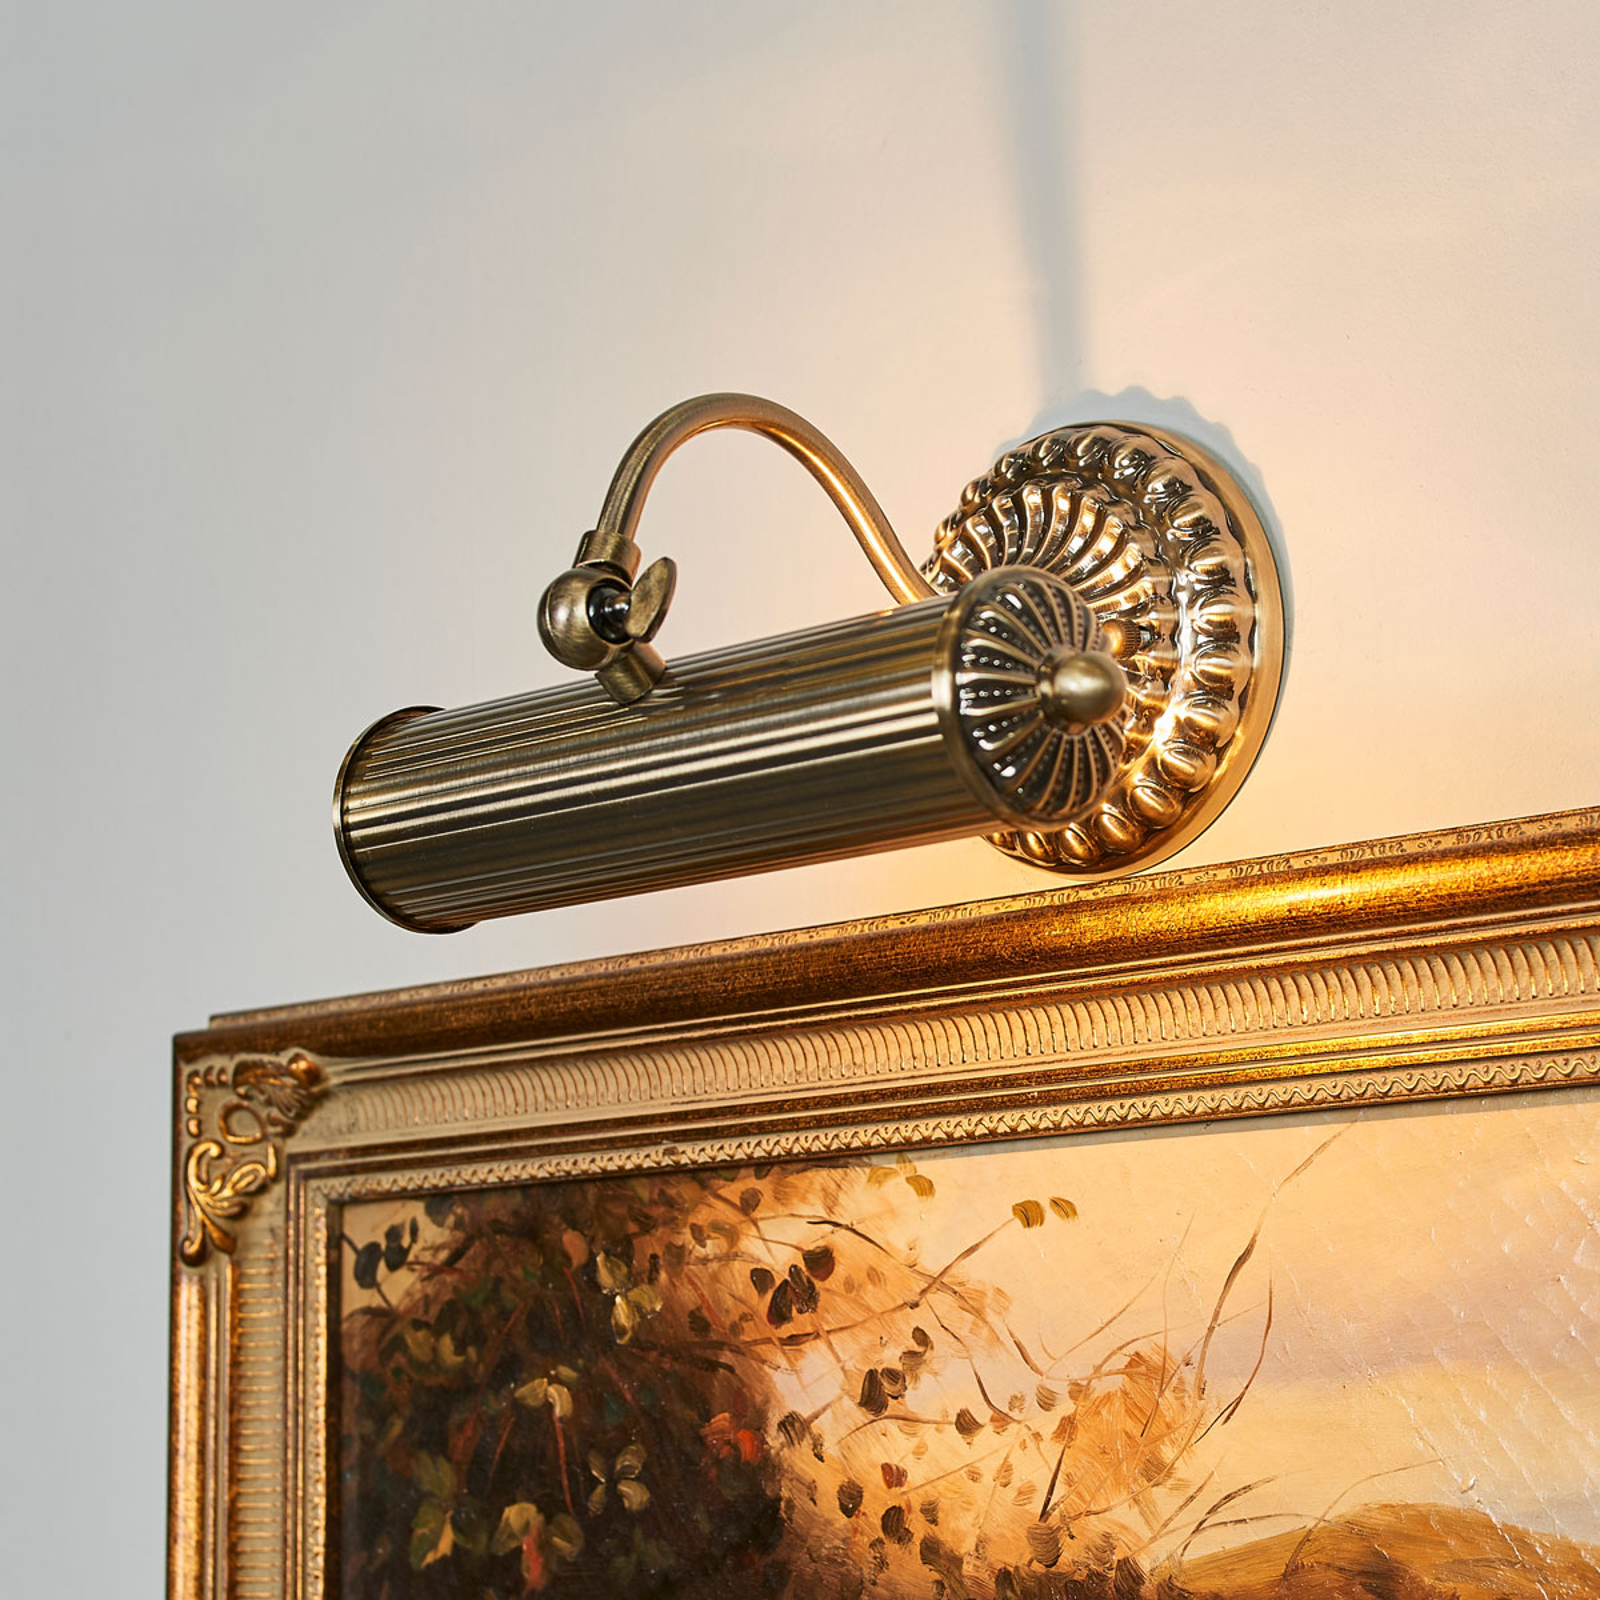 Antique-looking picture light Joely, antique brass_9639092_1